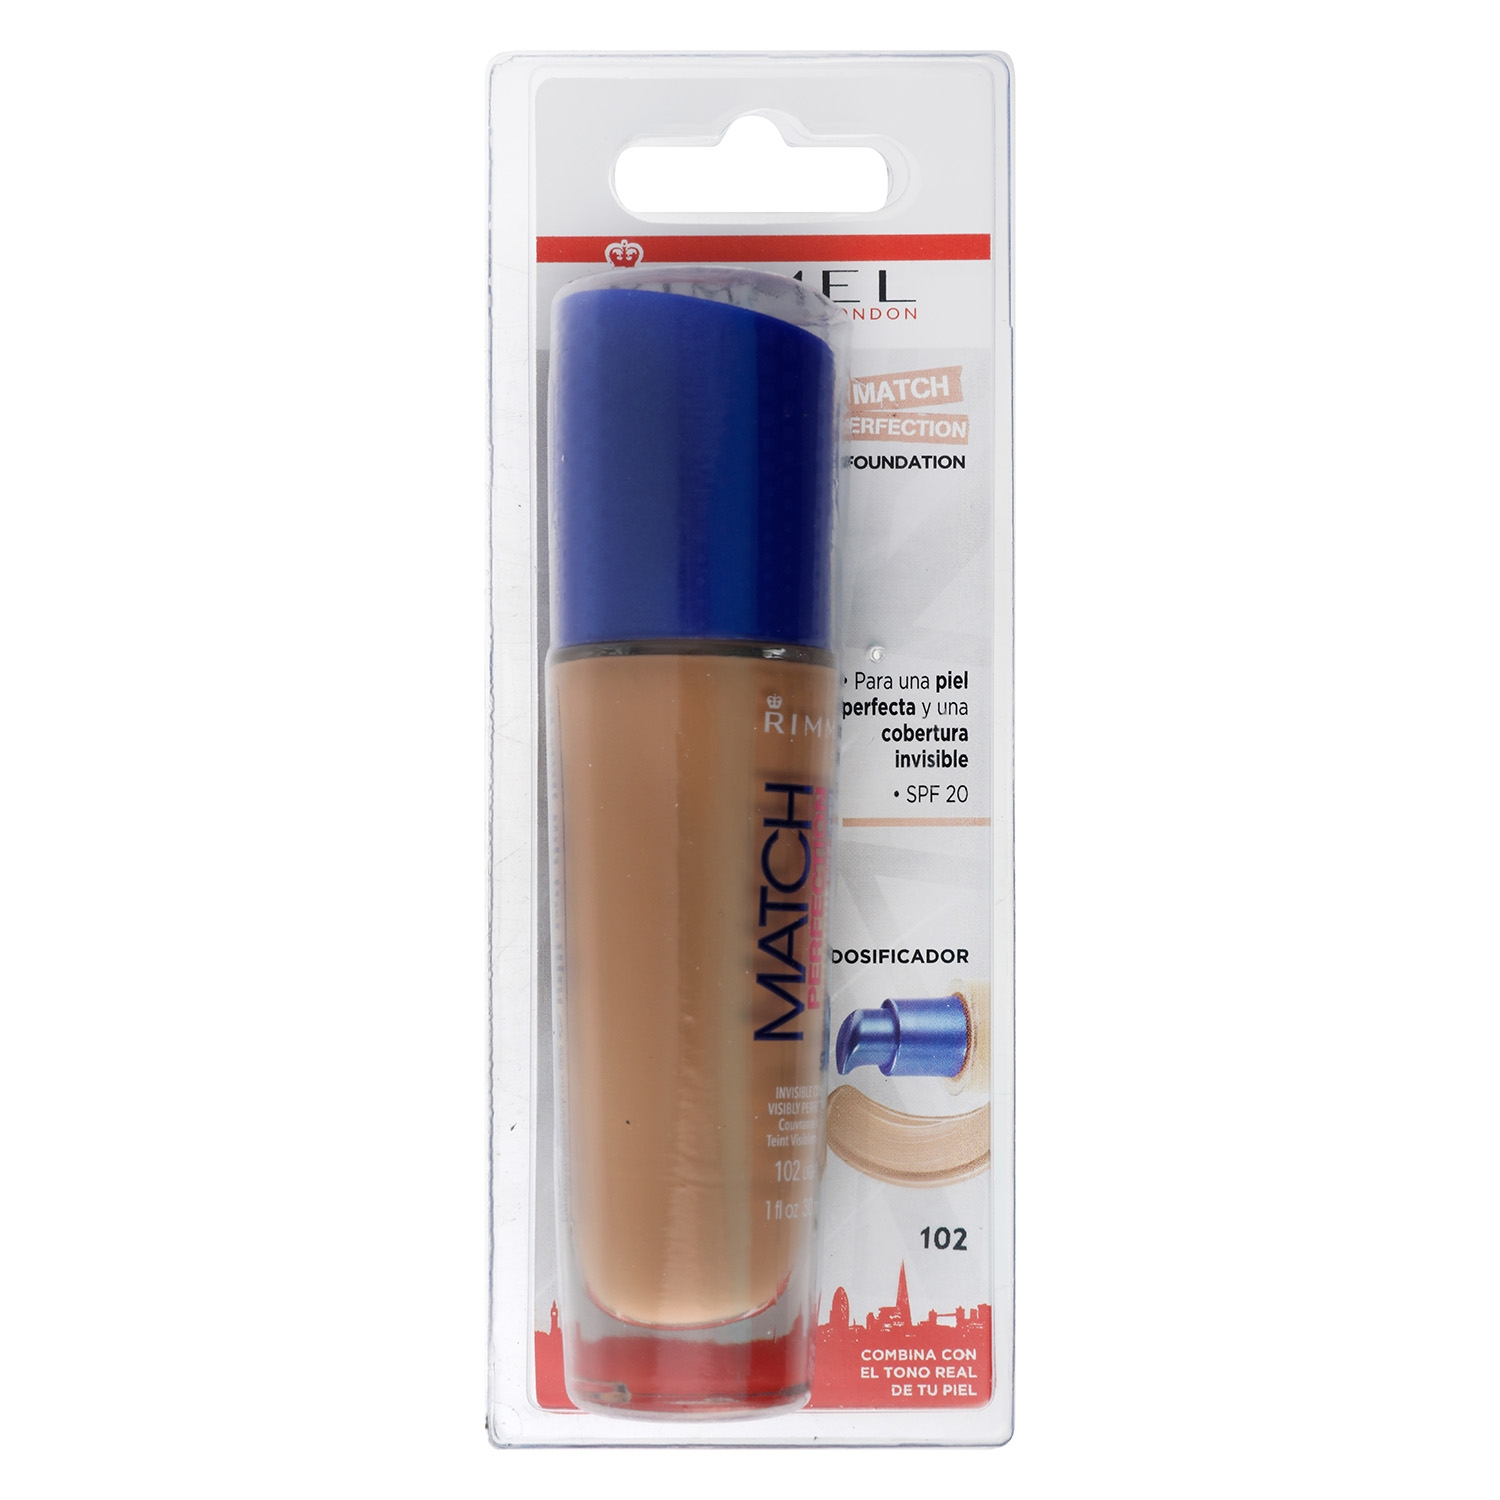 Maquillaje Match Perfection Fundation nº102 light nude